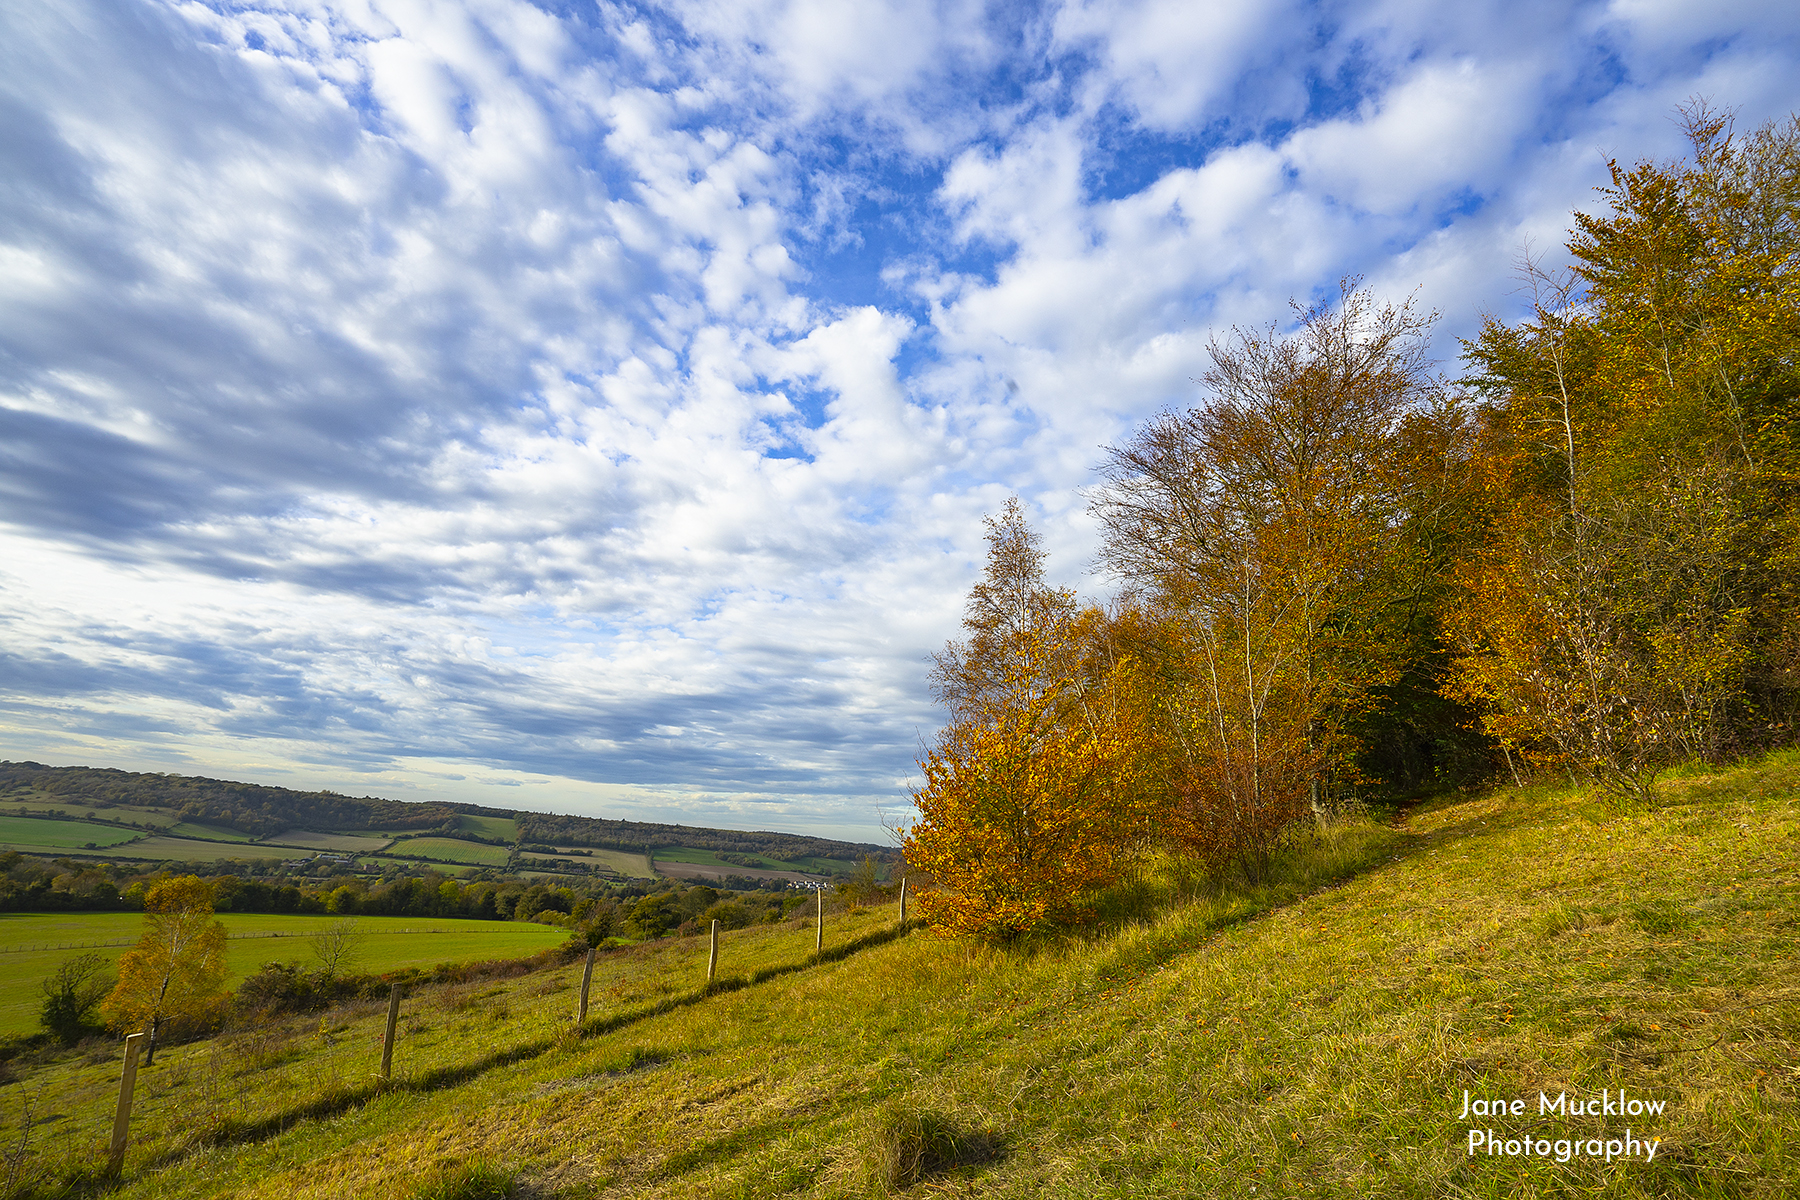 Photo of an Autumn view from Otford hills towards Shoreham, by Jane Mucklow